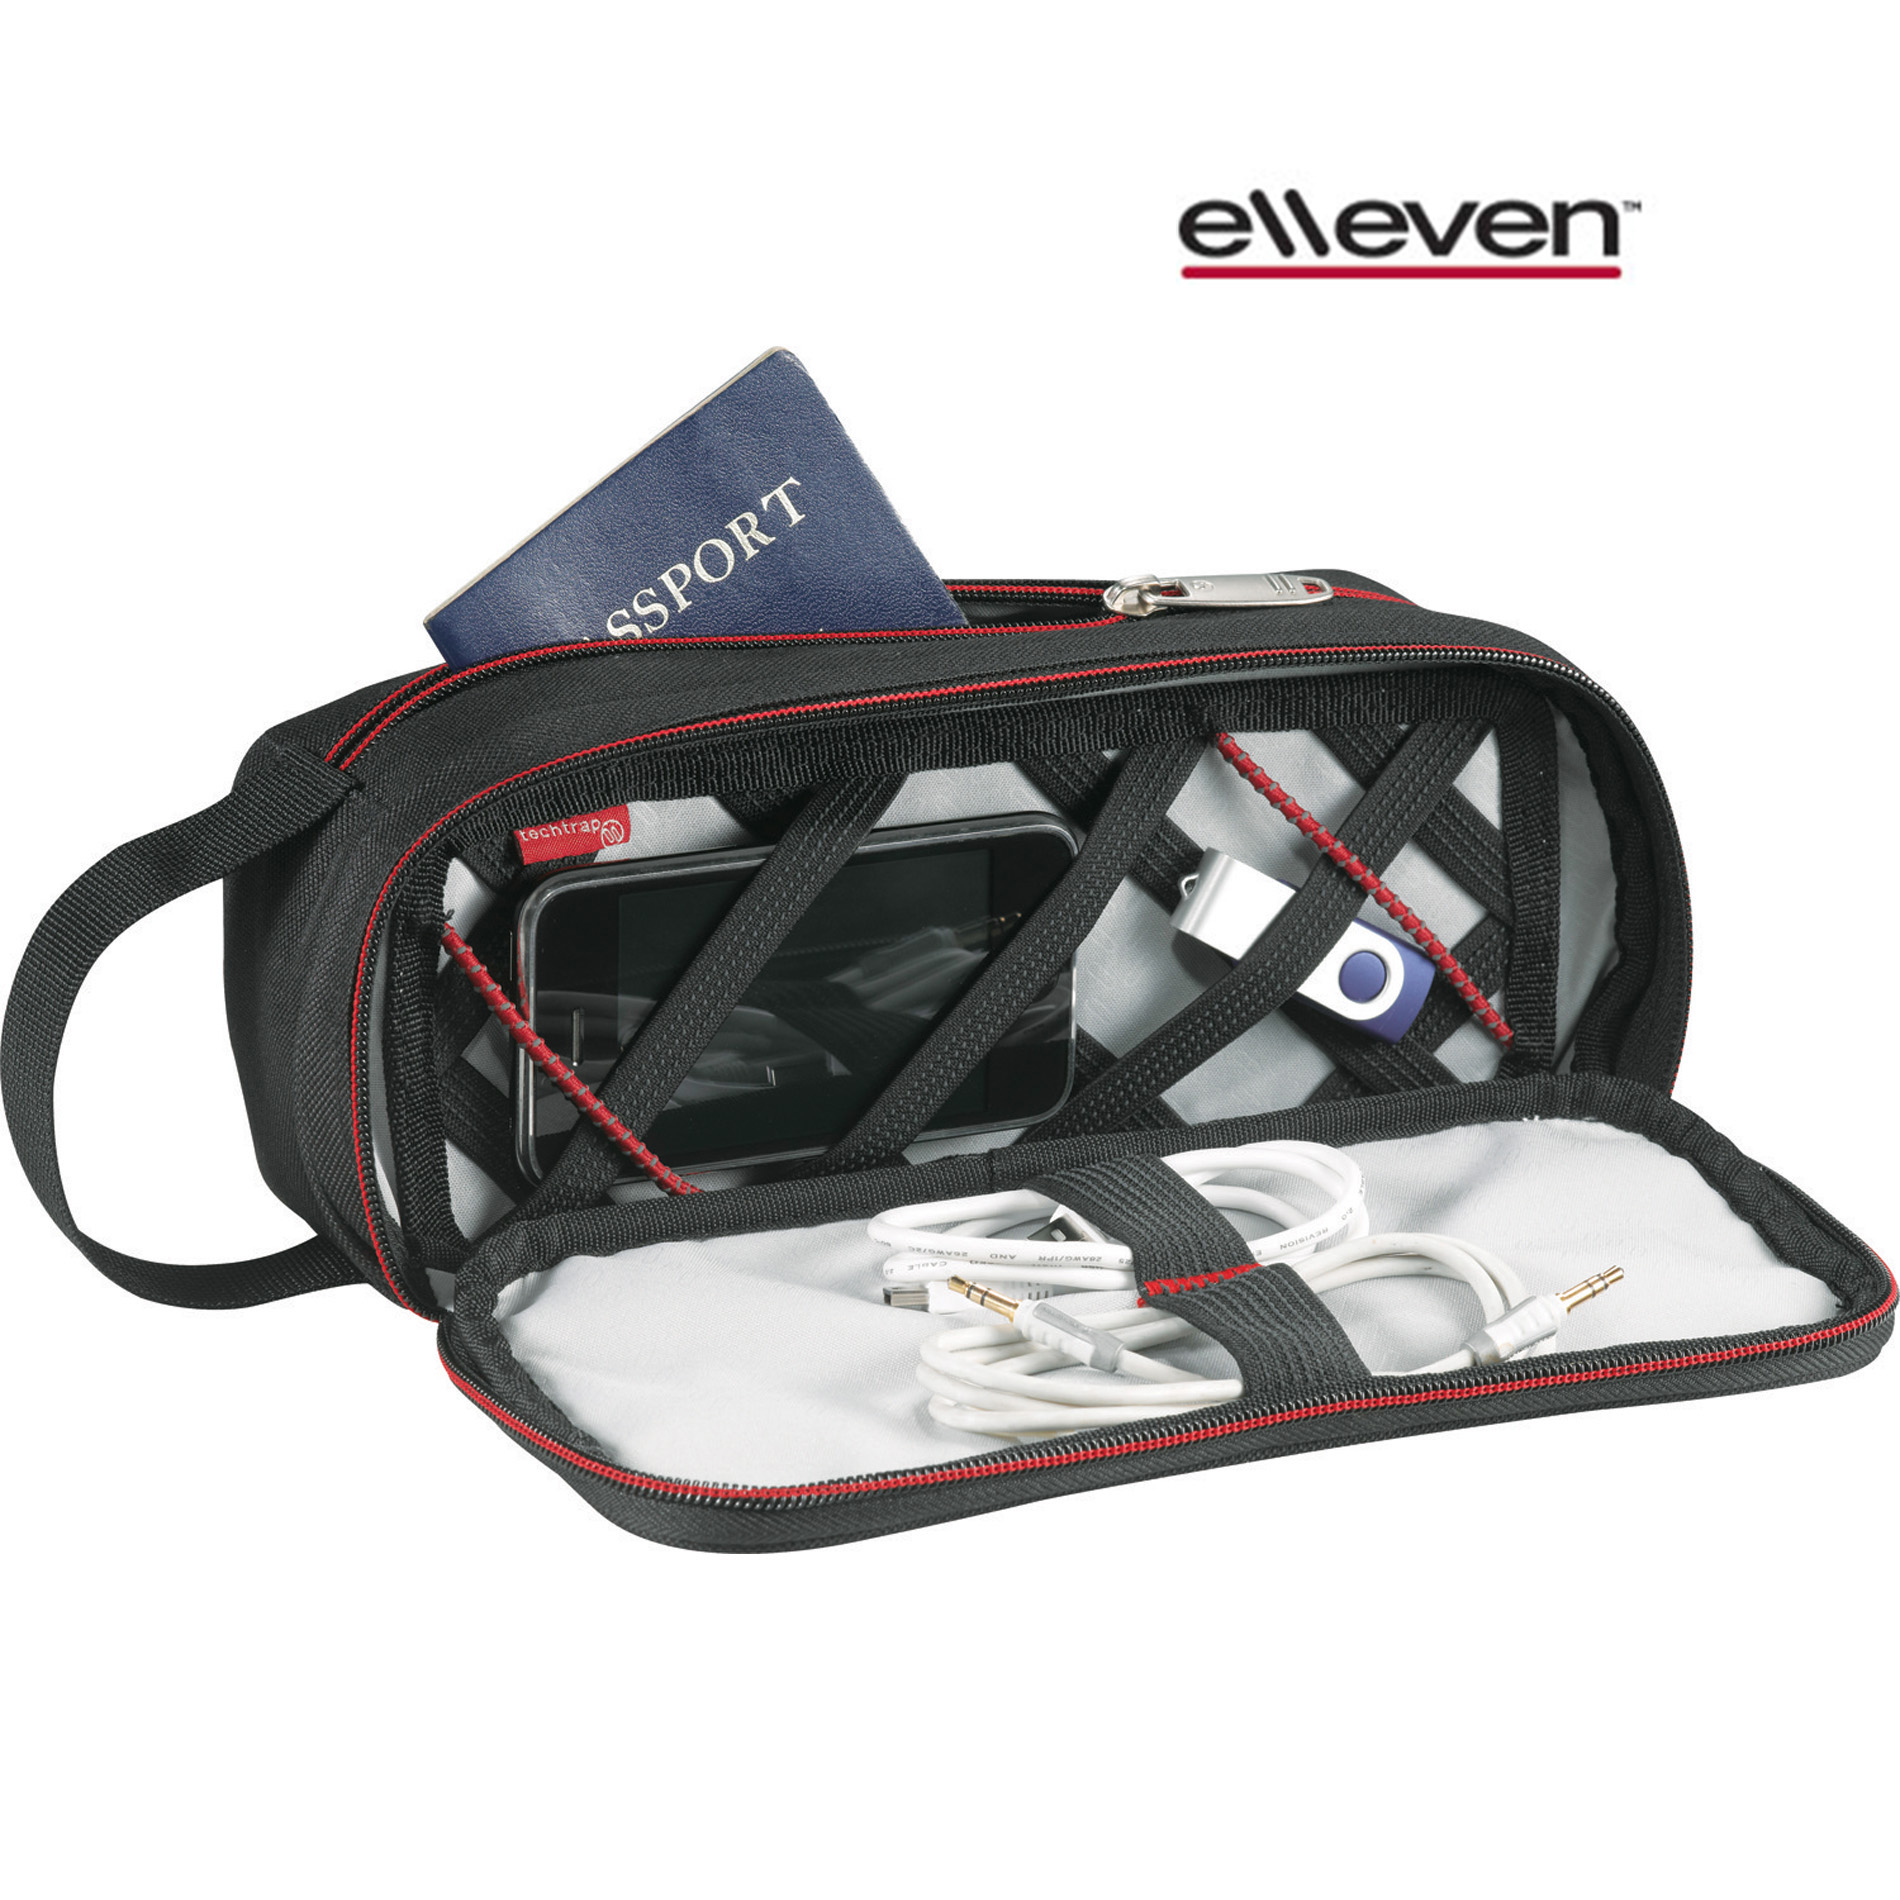 9194410f581c elleven™ Travel Organizer Case - Advantrade Supplies